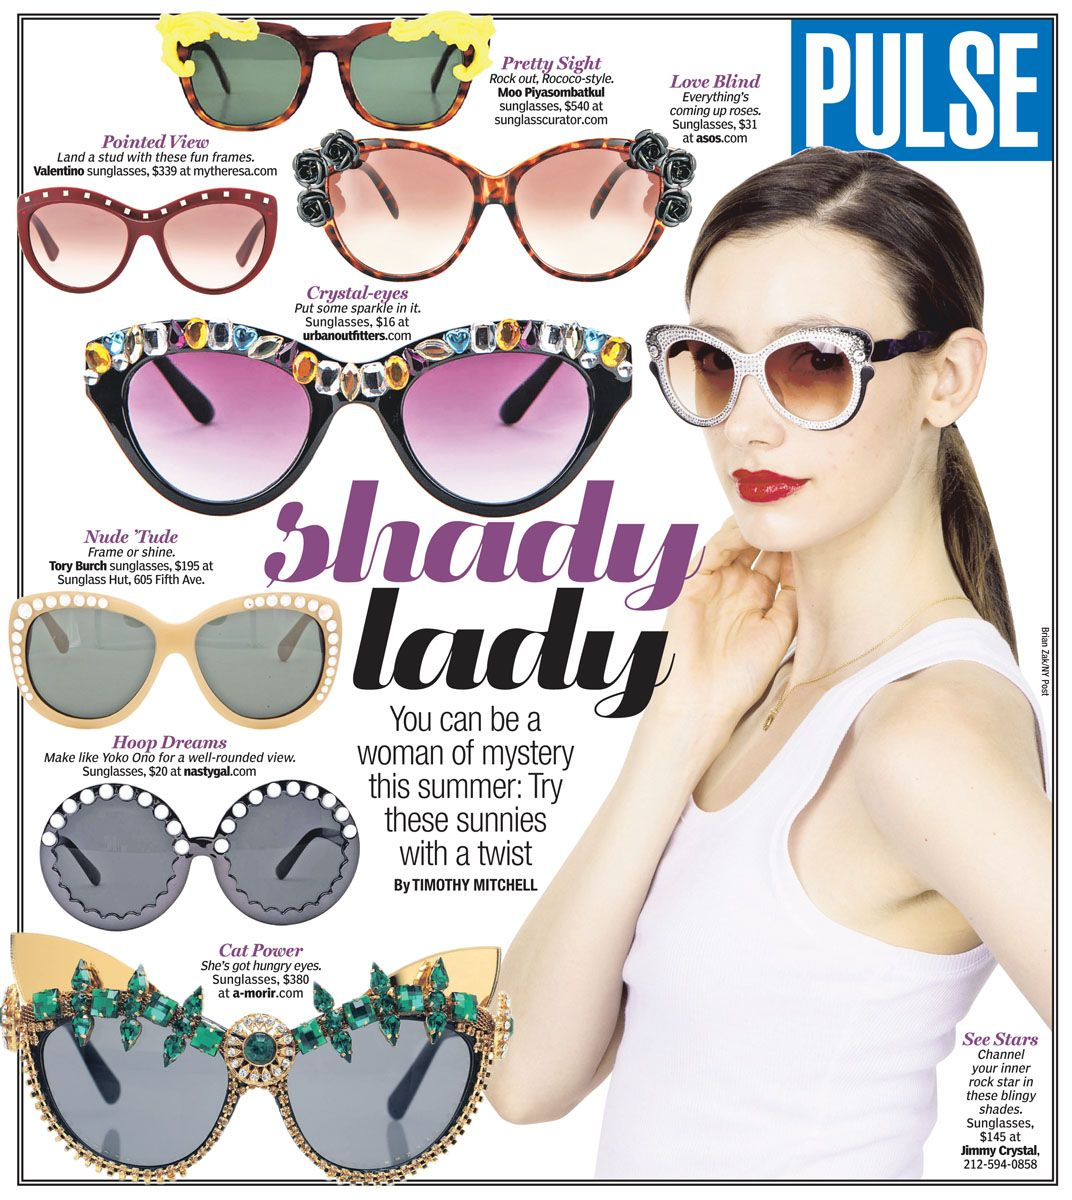 Be a woman of mystery this summer with these eye-grabbing sunglasses.